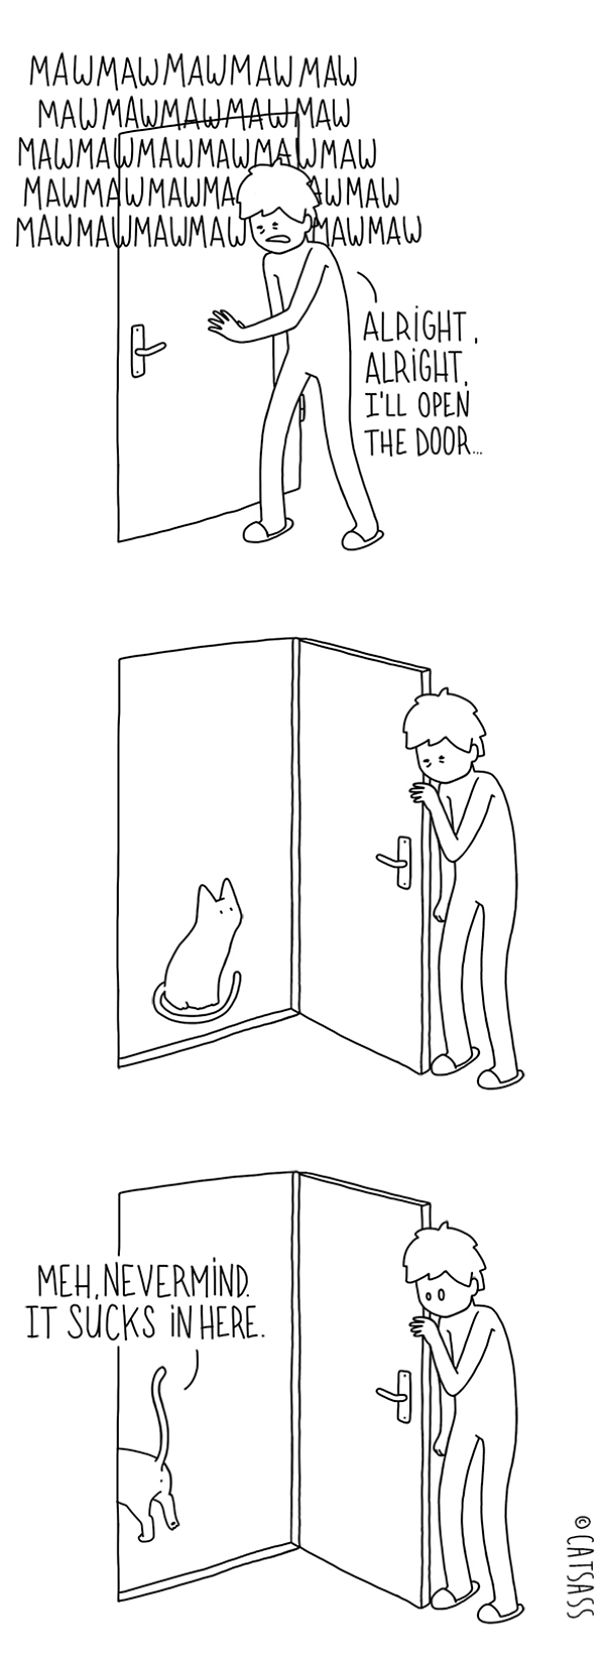 funny-comics-drawings-Catsass-cat-human-relationship-thinks (3)